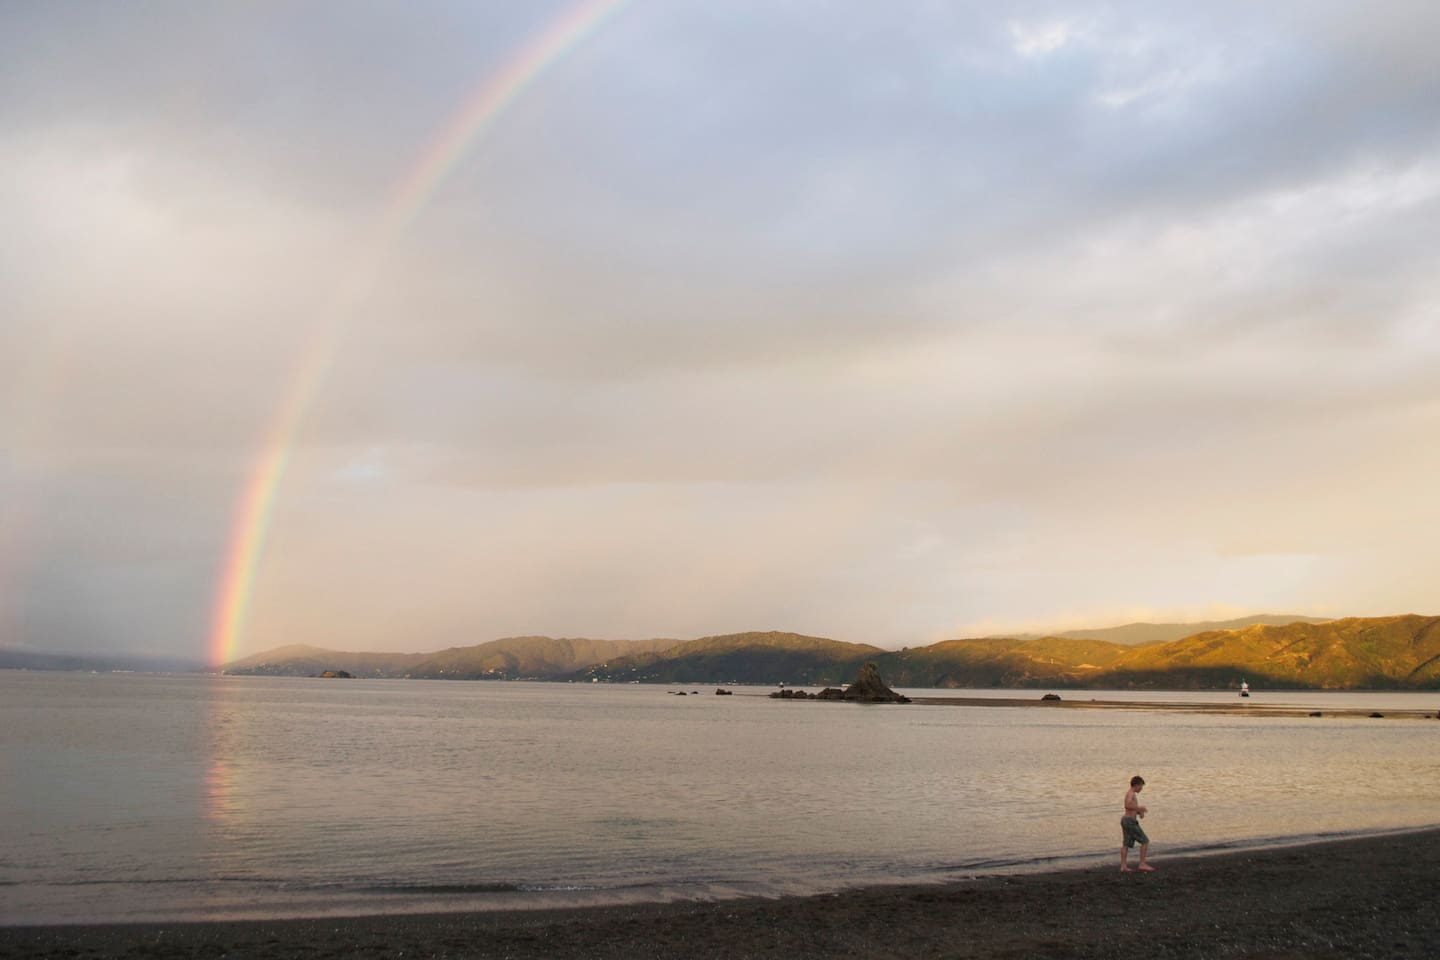 Rainbow over Seatoun beach, a five minute walk from The Lighthouse